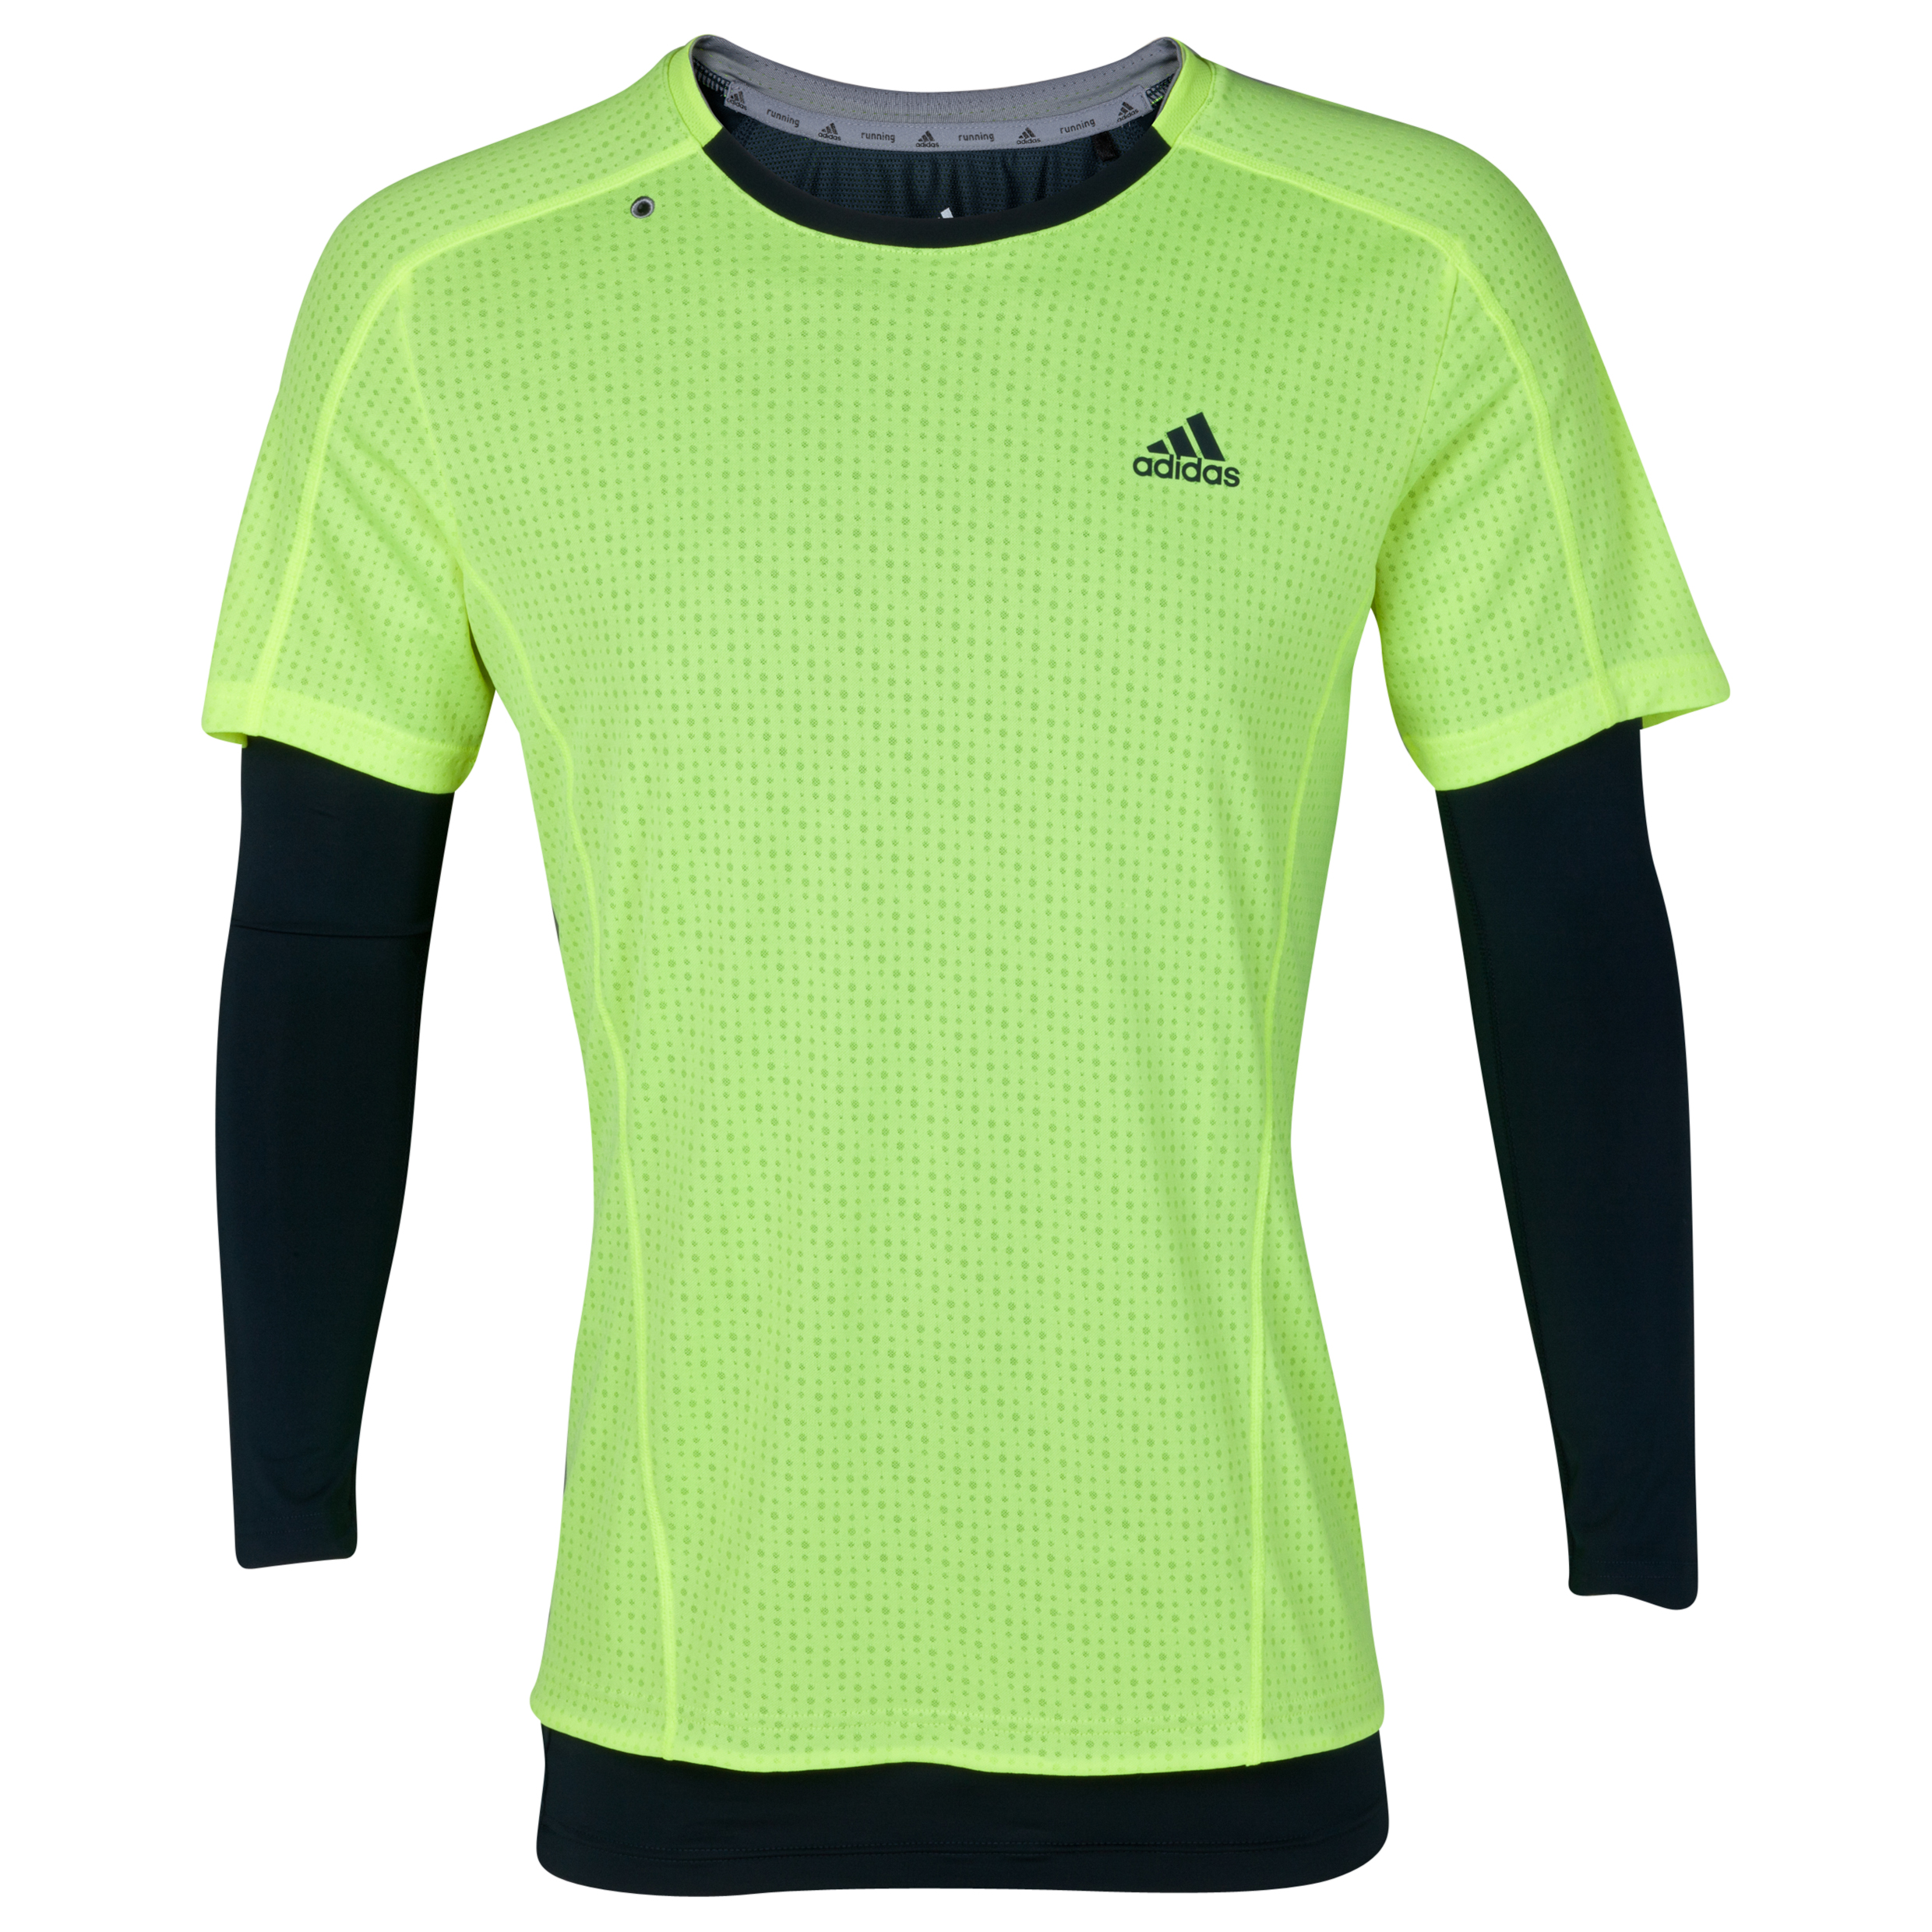 Adidas Supernova 2in1 T-Shirt - Long Sleeve - Electricity/Tech Onix